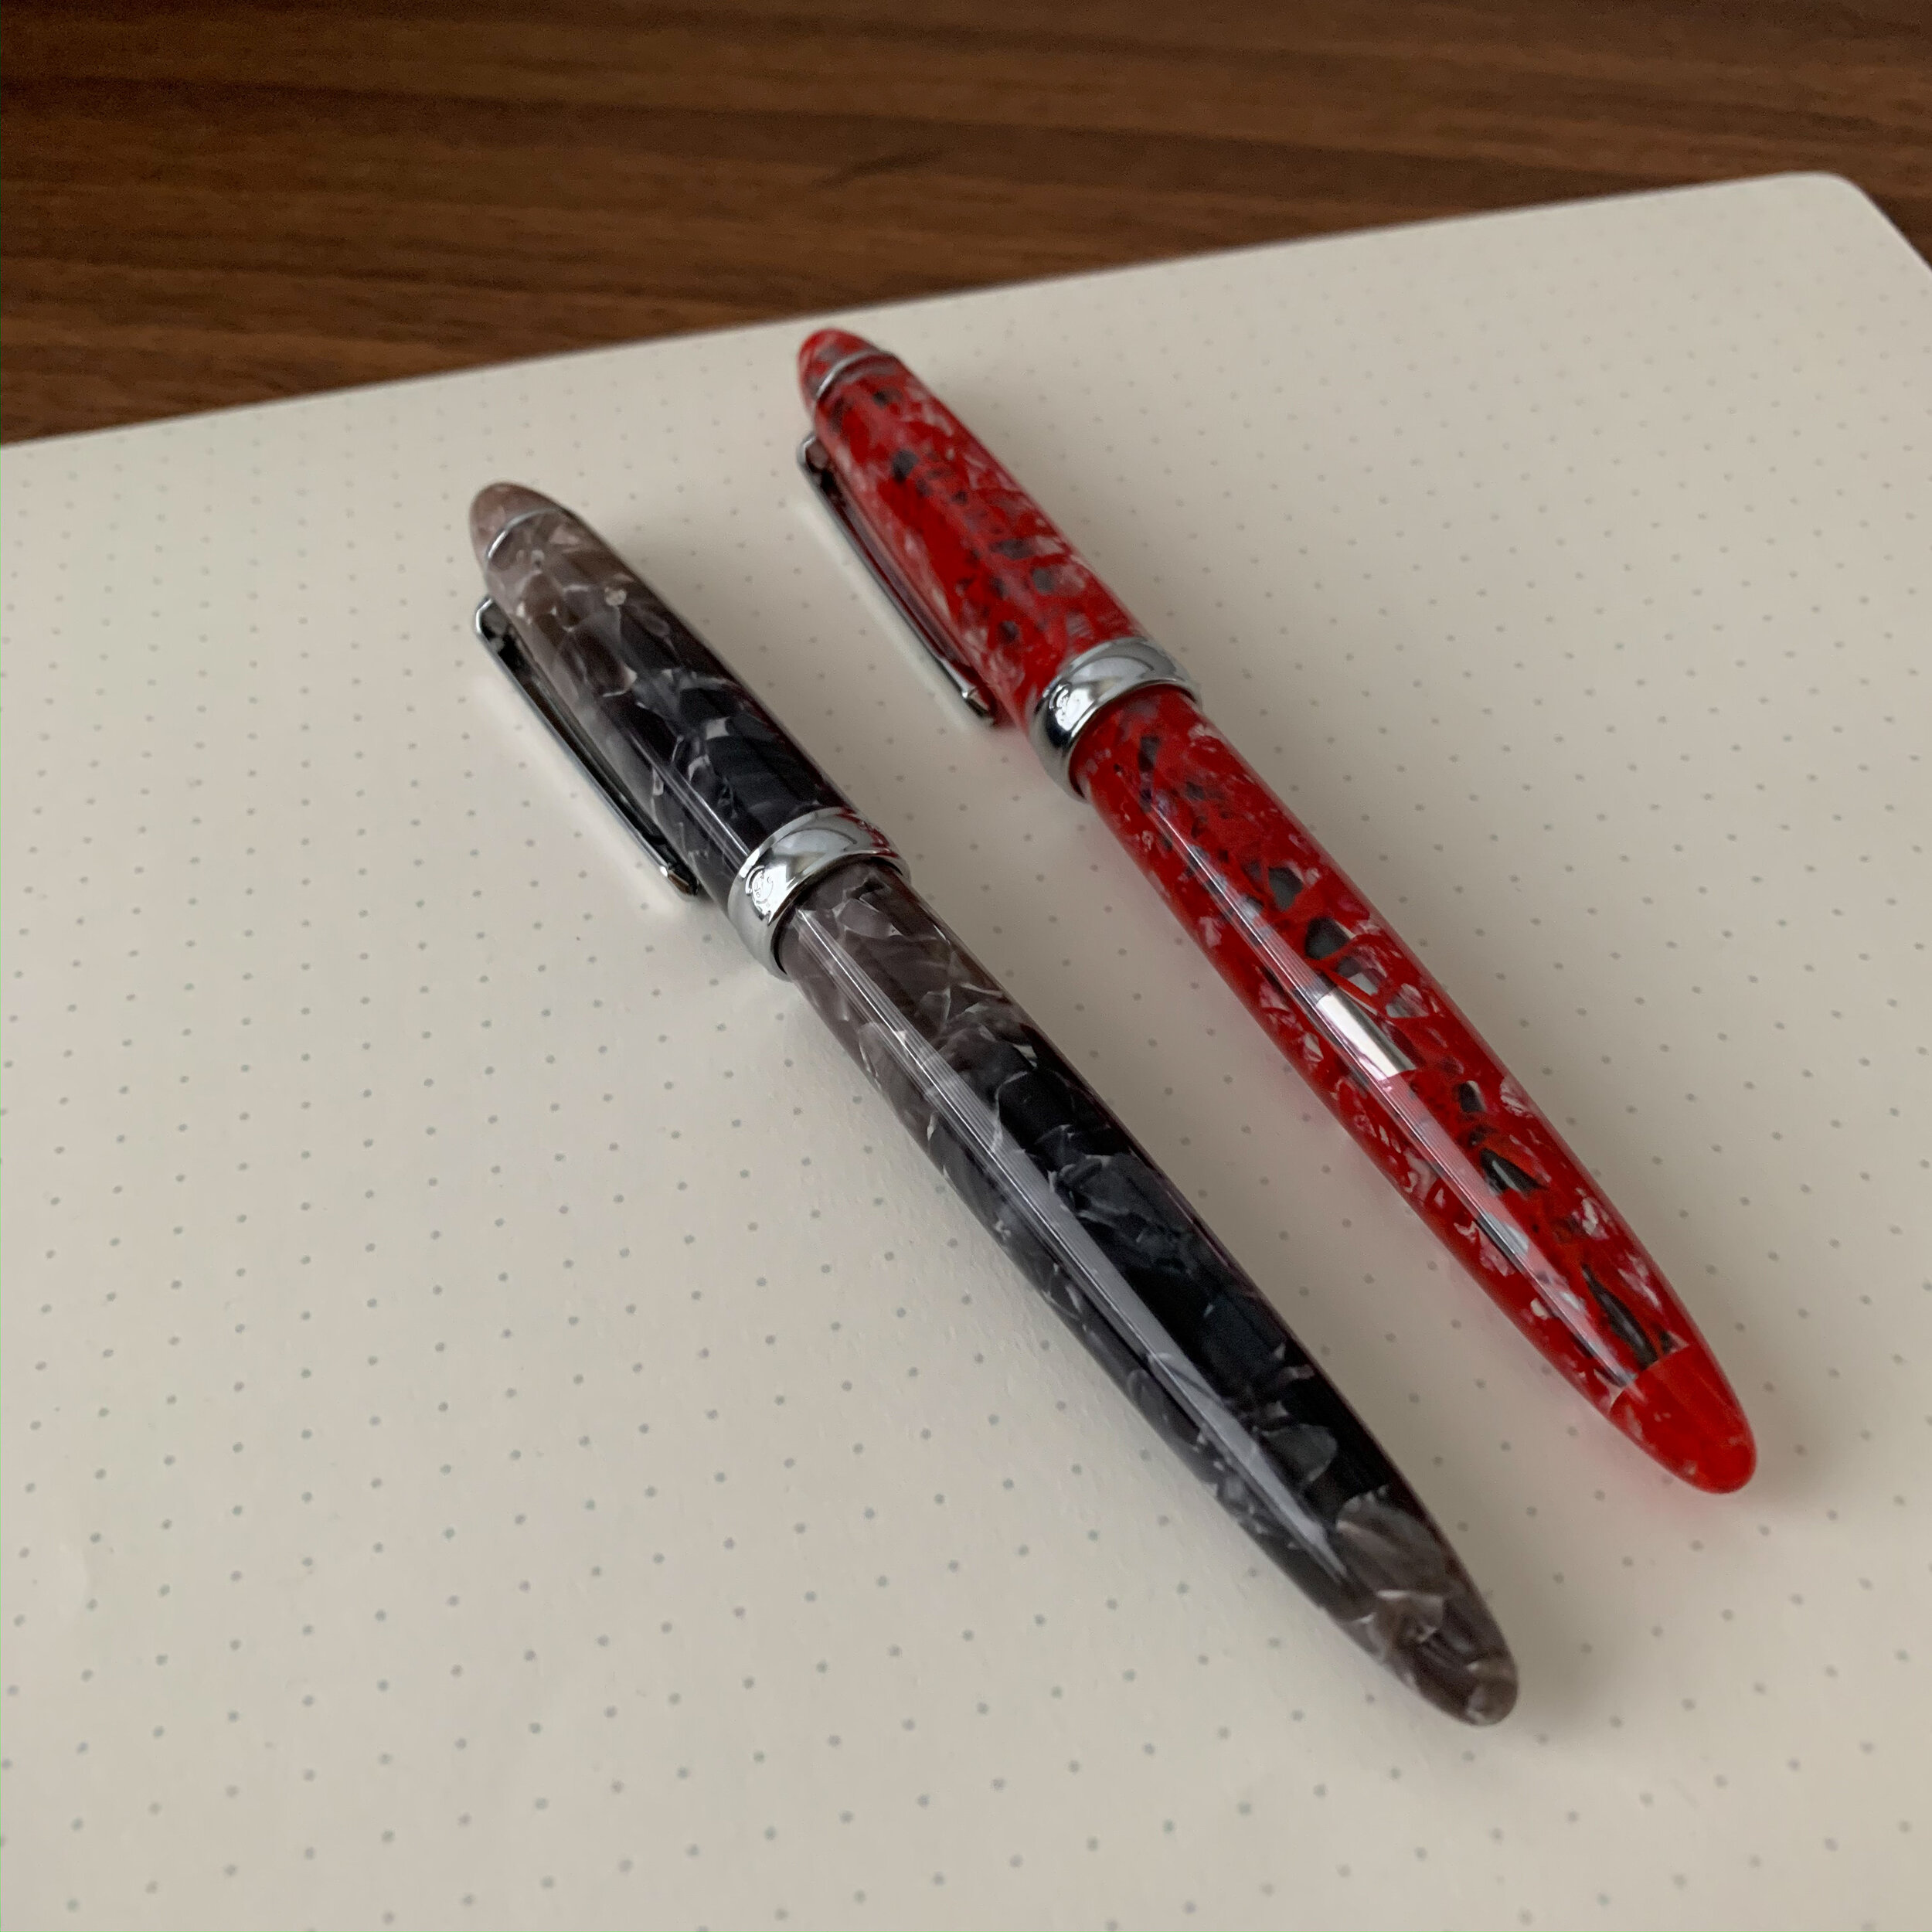 PenBBS manages to offer well-designed, functional writing instruments at a bargain price, AND make them attractive, to boot.